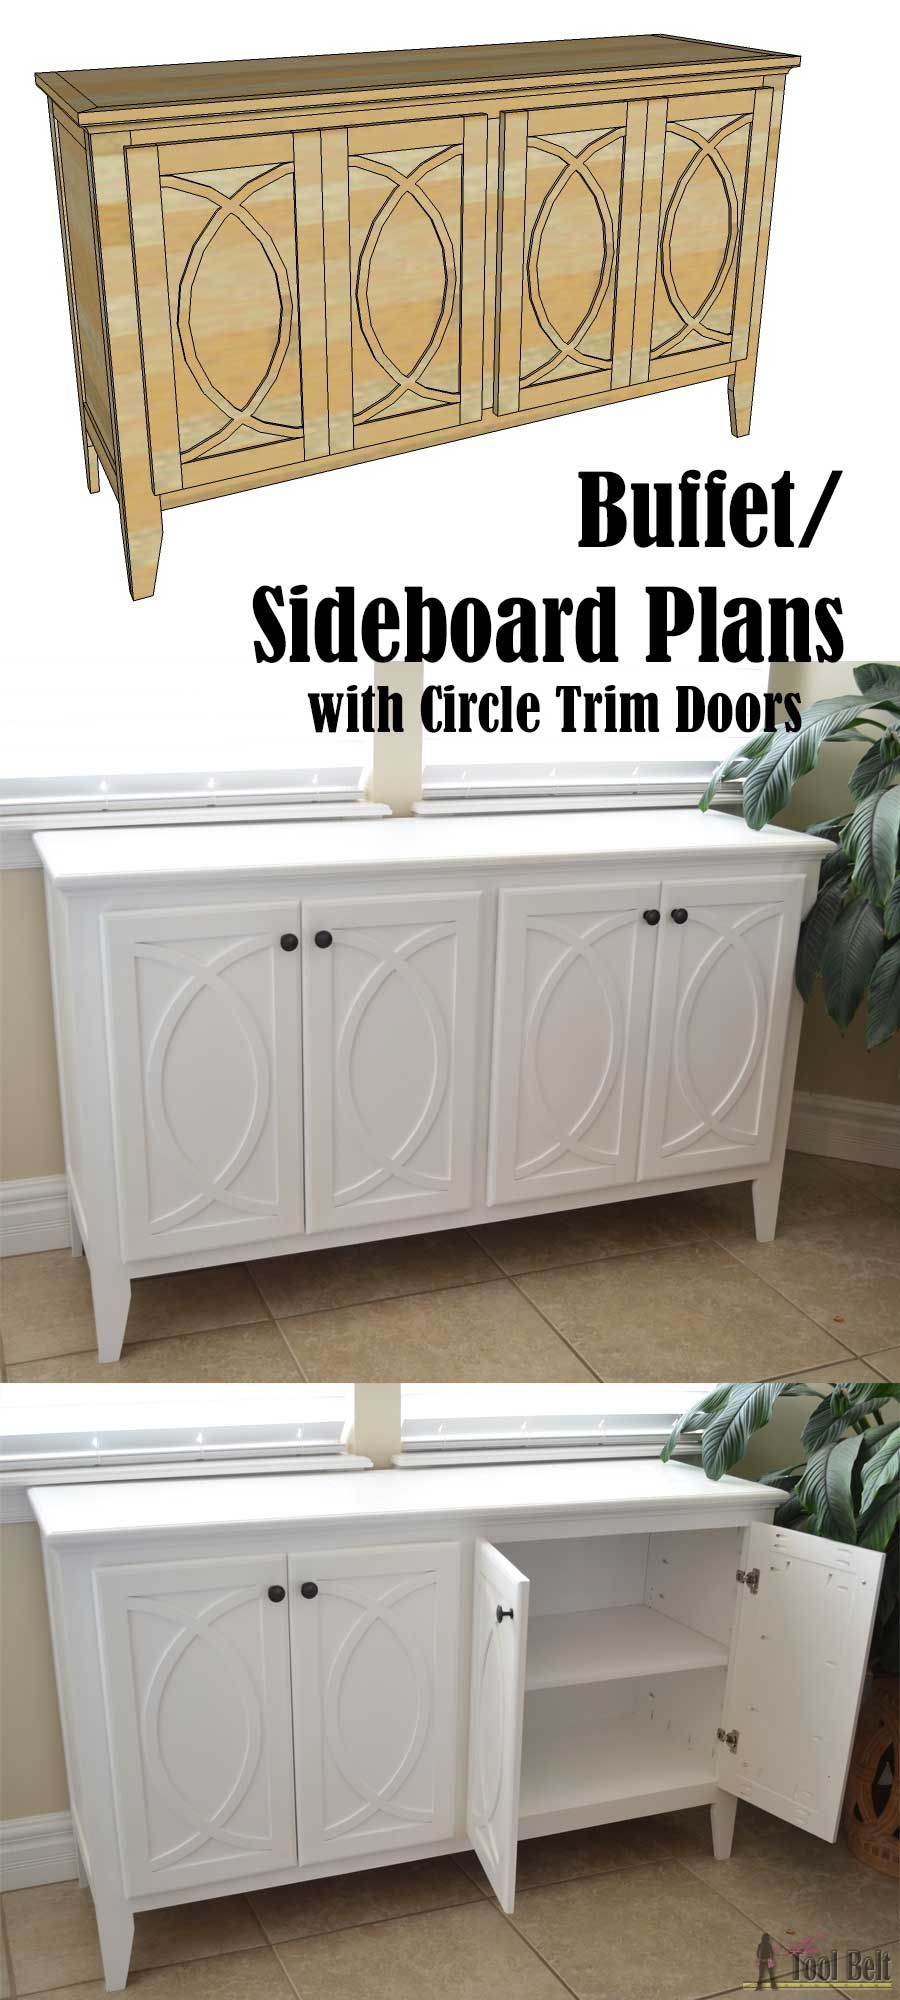 Diy Buffet Or Sideboard With Circle Trim Doors This Cabinet Boasts Plenty Of Dining Kitchen Supply Storage Free Building Plans